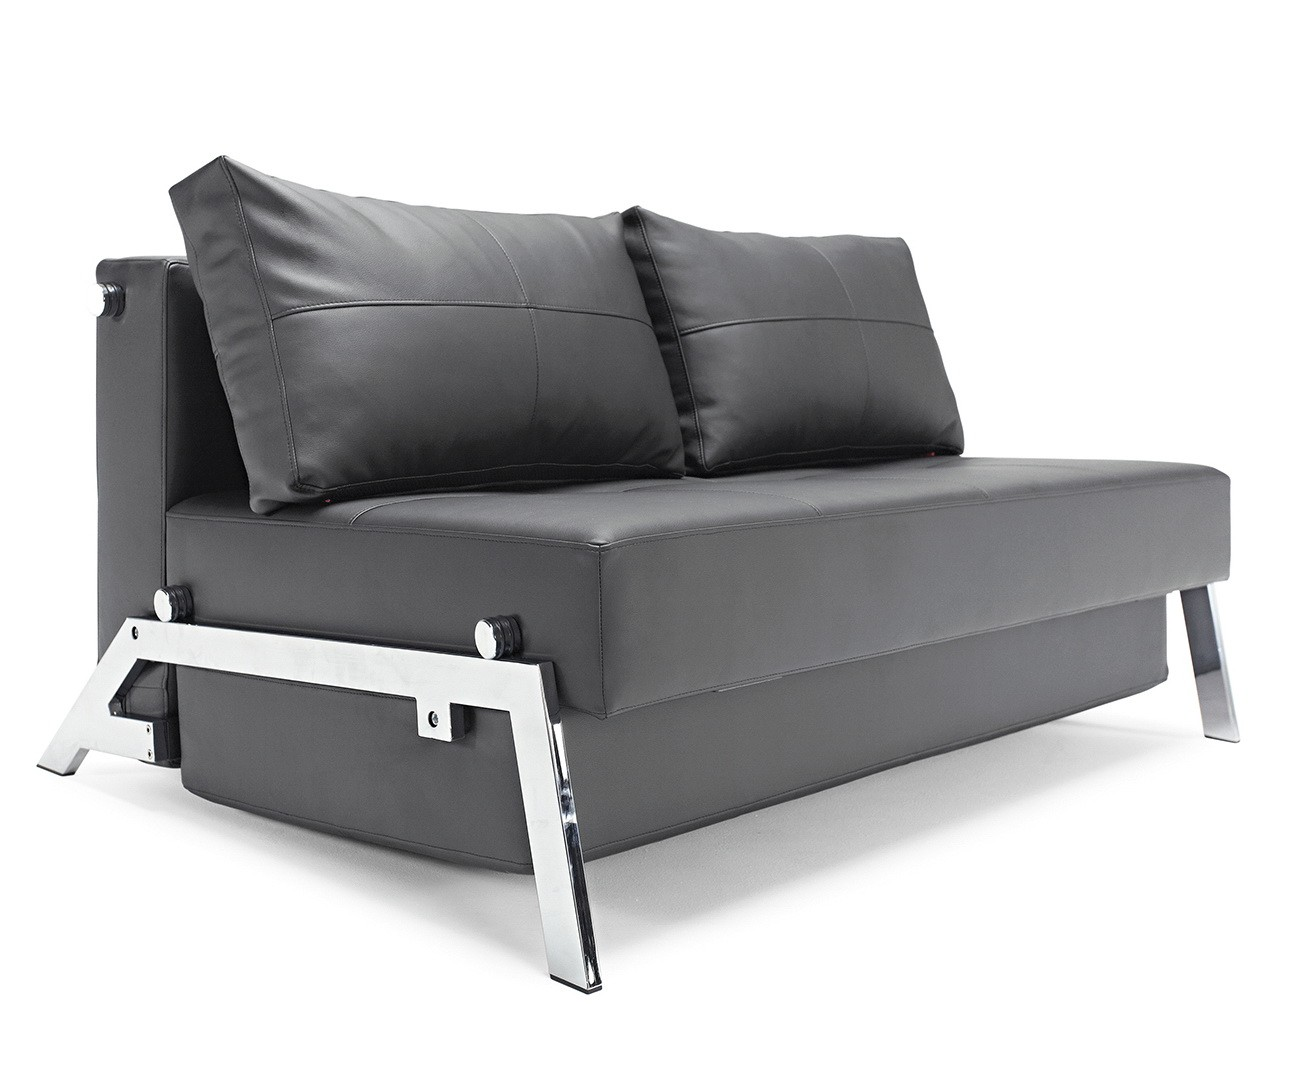 Cubed Deluxe Sofa Bed Innovation Usa Available At Nova Interiors Contemporary Furniture Store